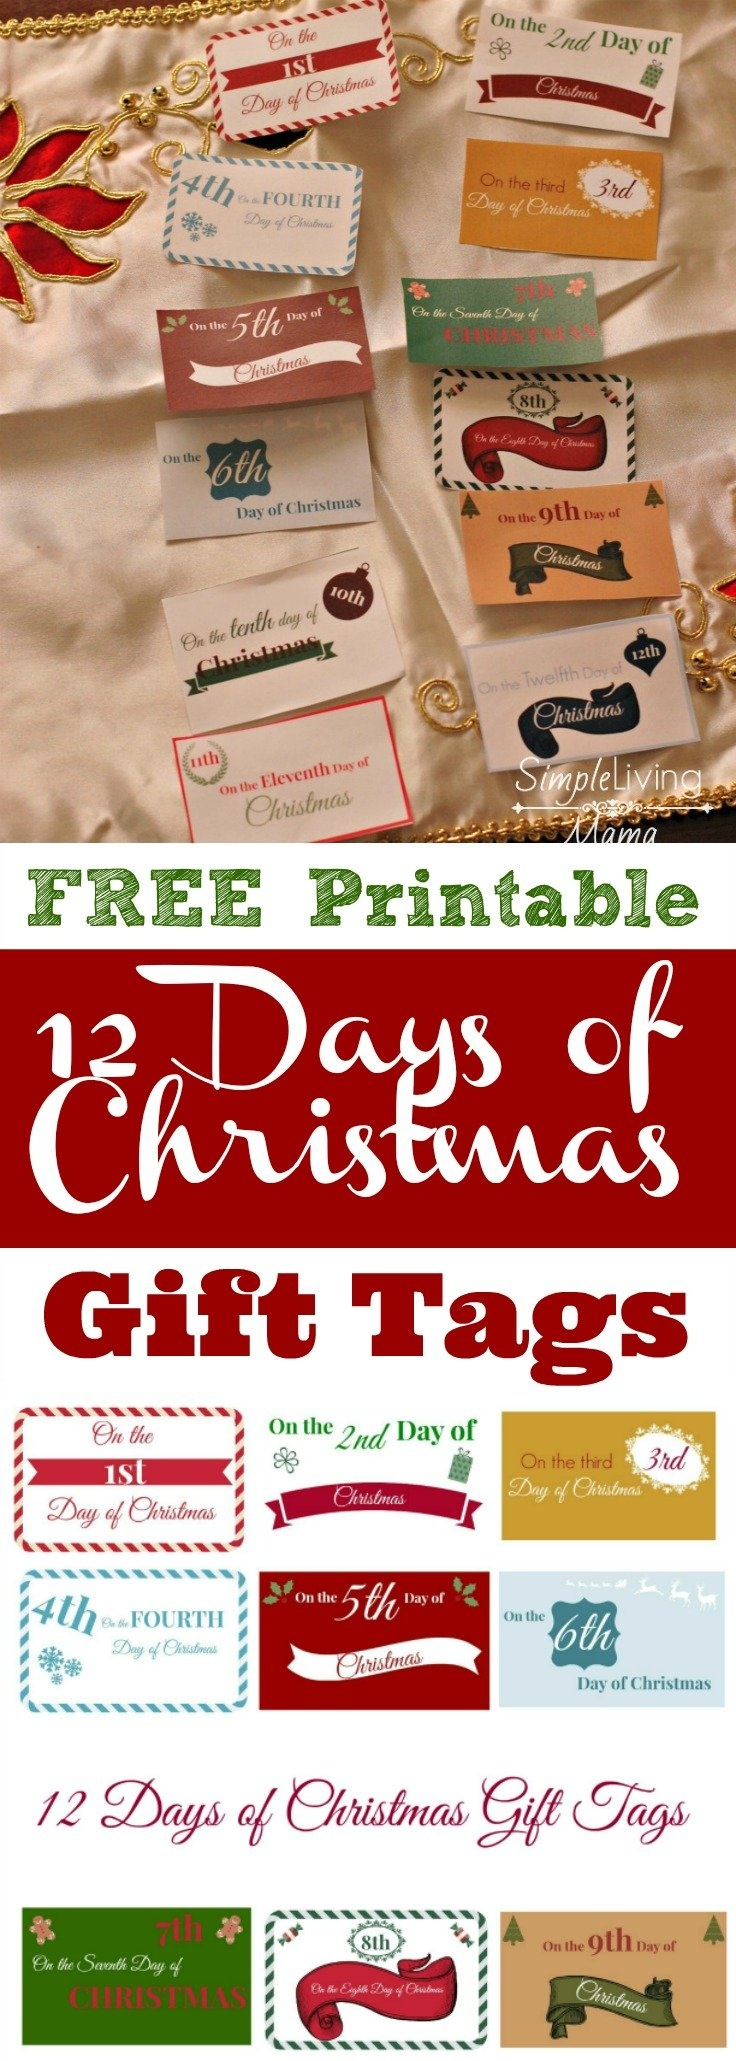 The 12 Days Of Christmas Ideas + Printable Gift Tags - Simple Living - Free Printable 12 Days Of Christmas Gift Tags